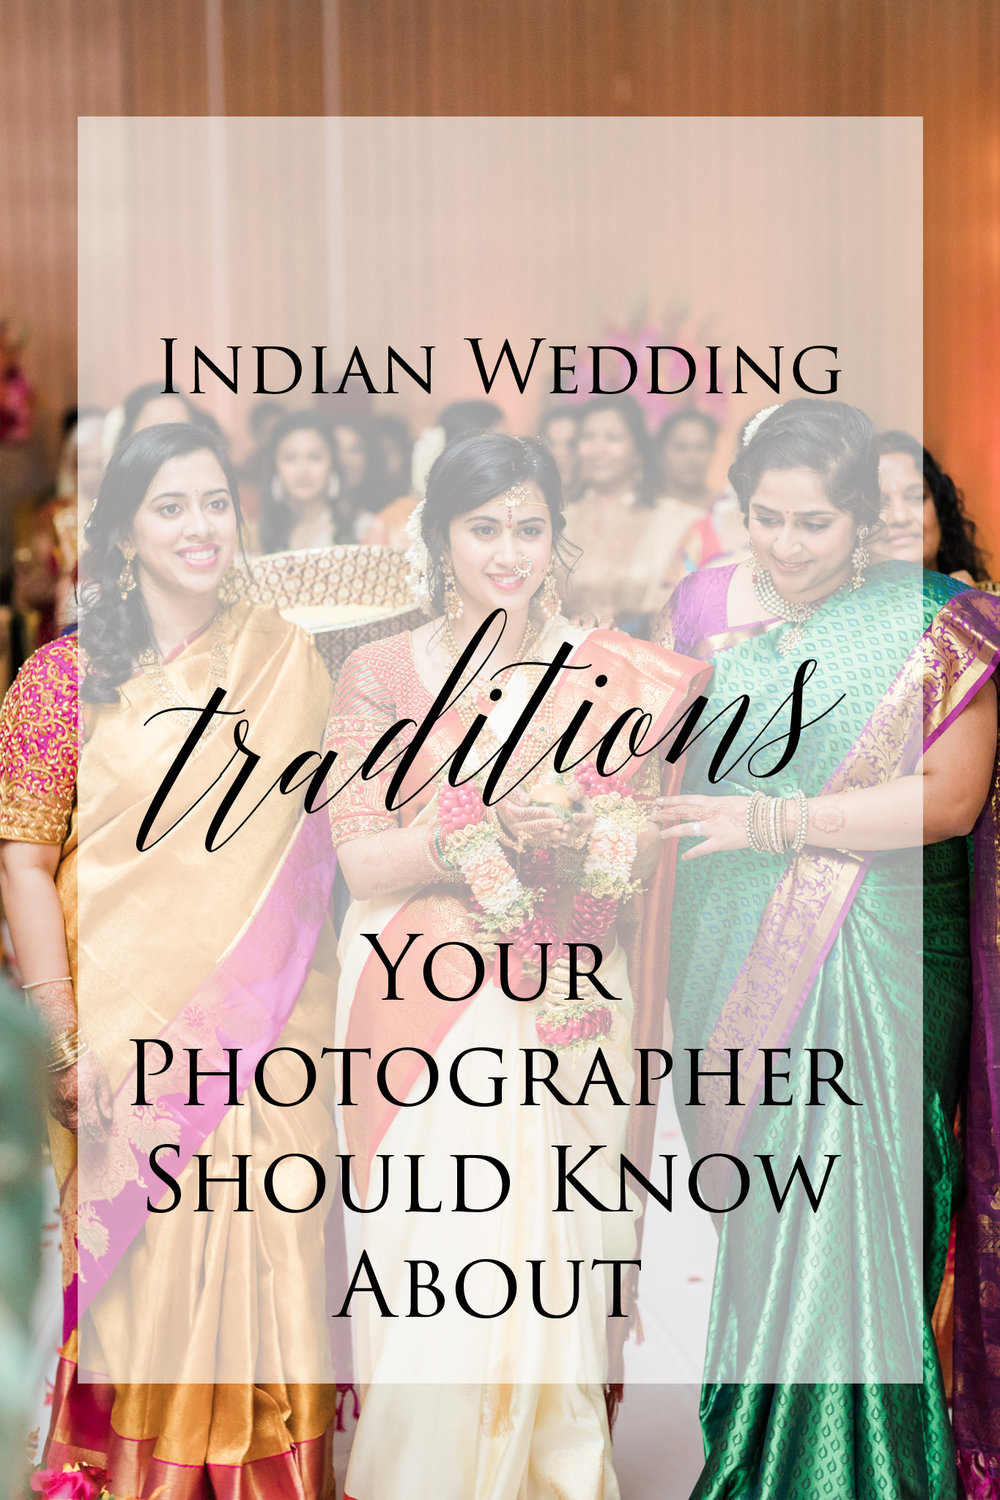 cf3af5ef113 Indian Wedding Traditions Your Photographer Should Know About